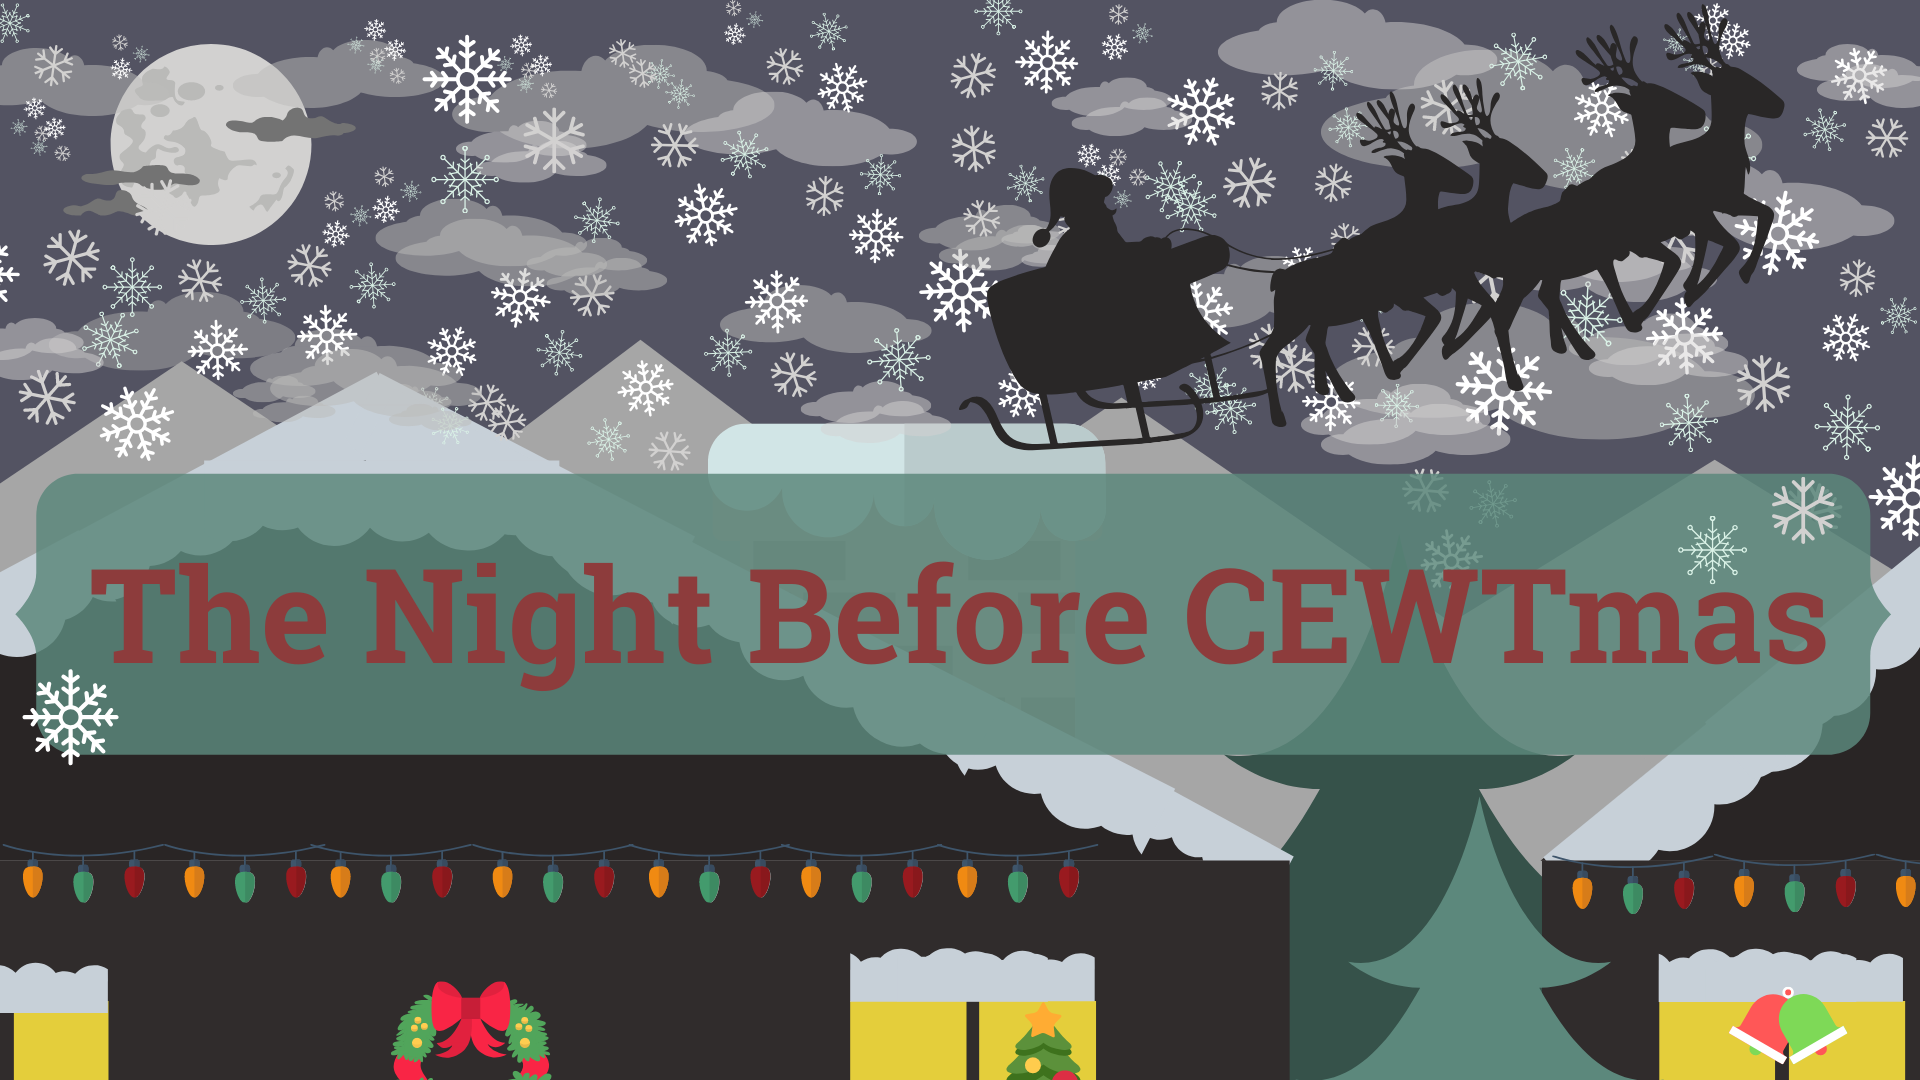 cewt WISHES YOU A MERRY CHRISTMAS!